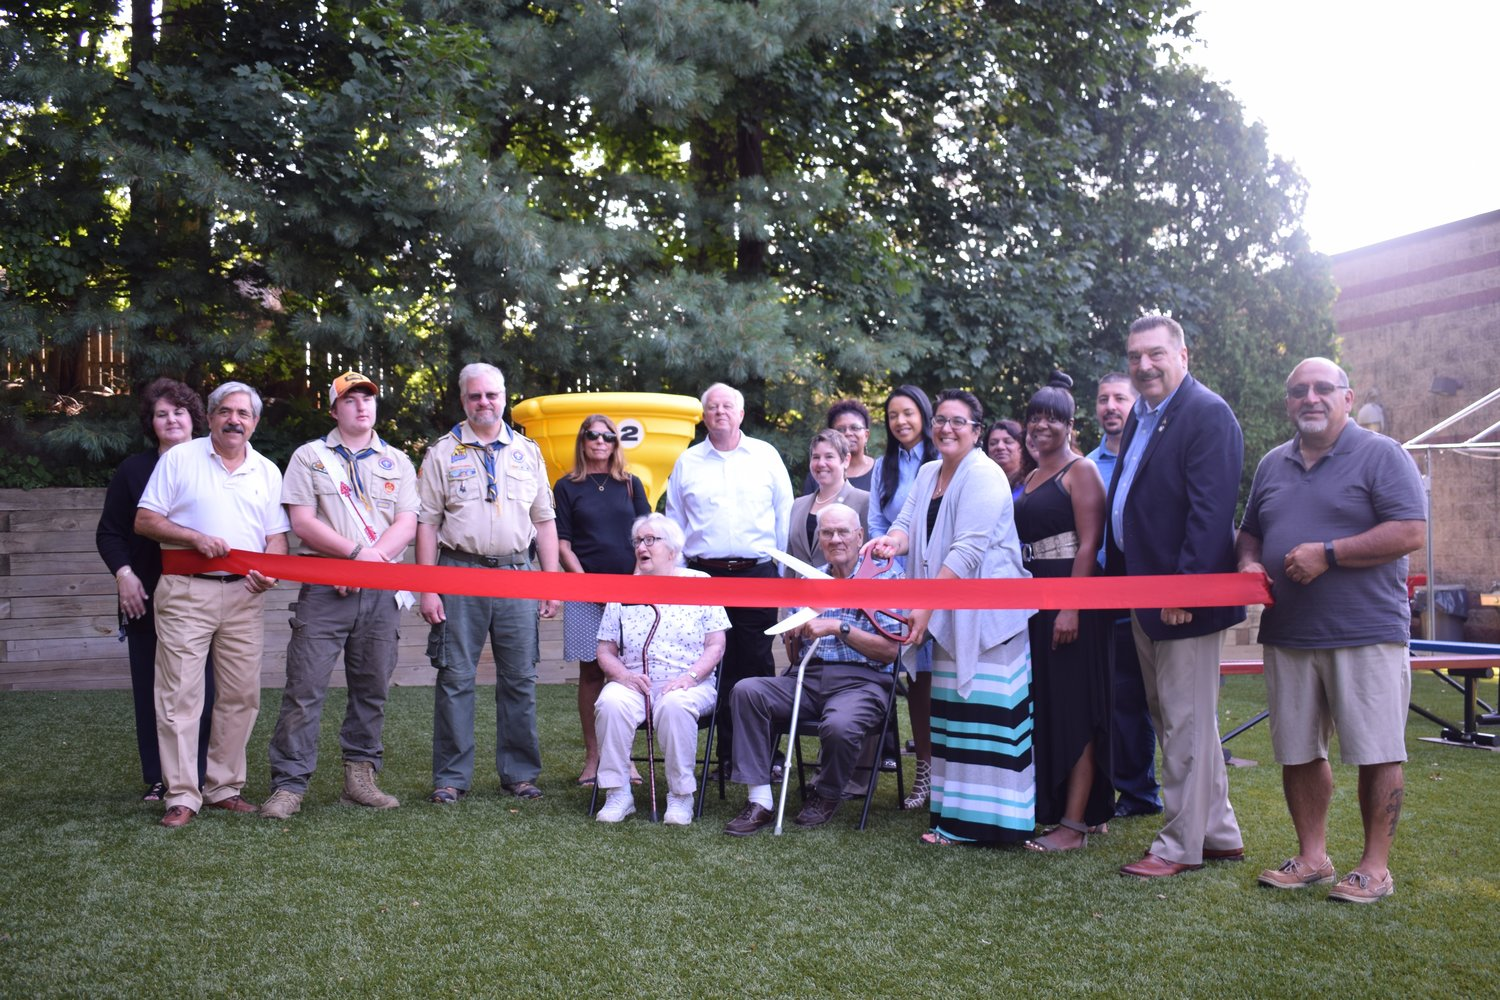 Glen Cove Harbor Child Care Center Director Claudia Recarey cut the ribbon for the opening of the new playground.